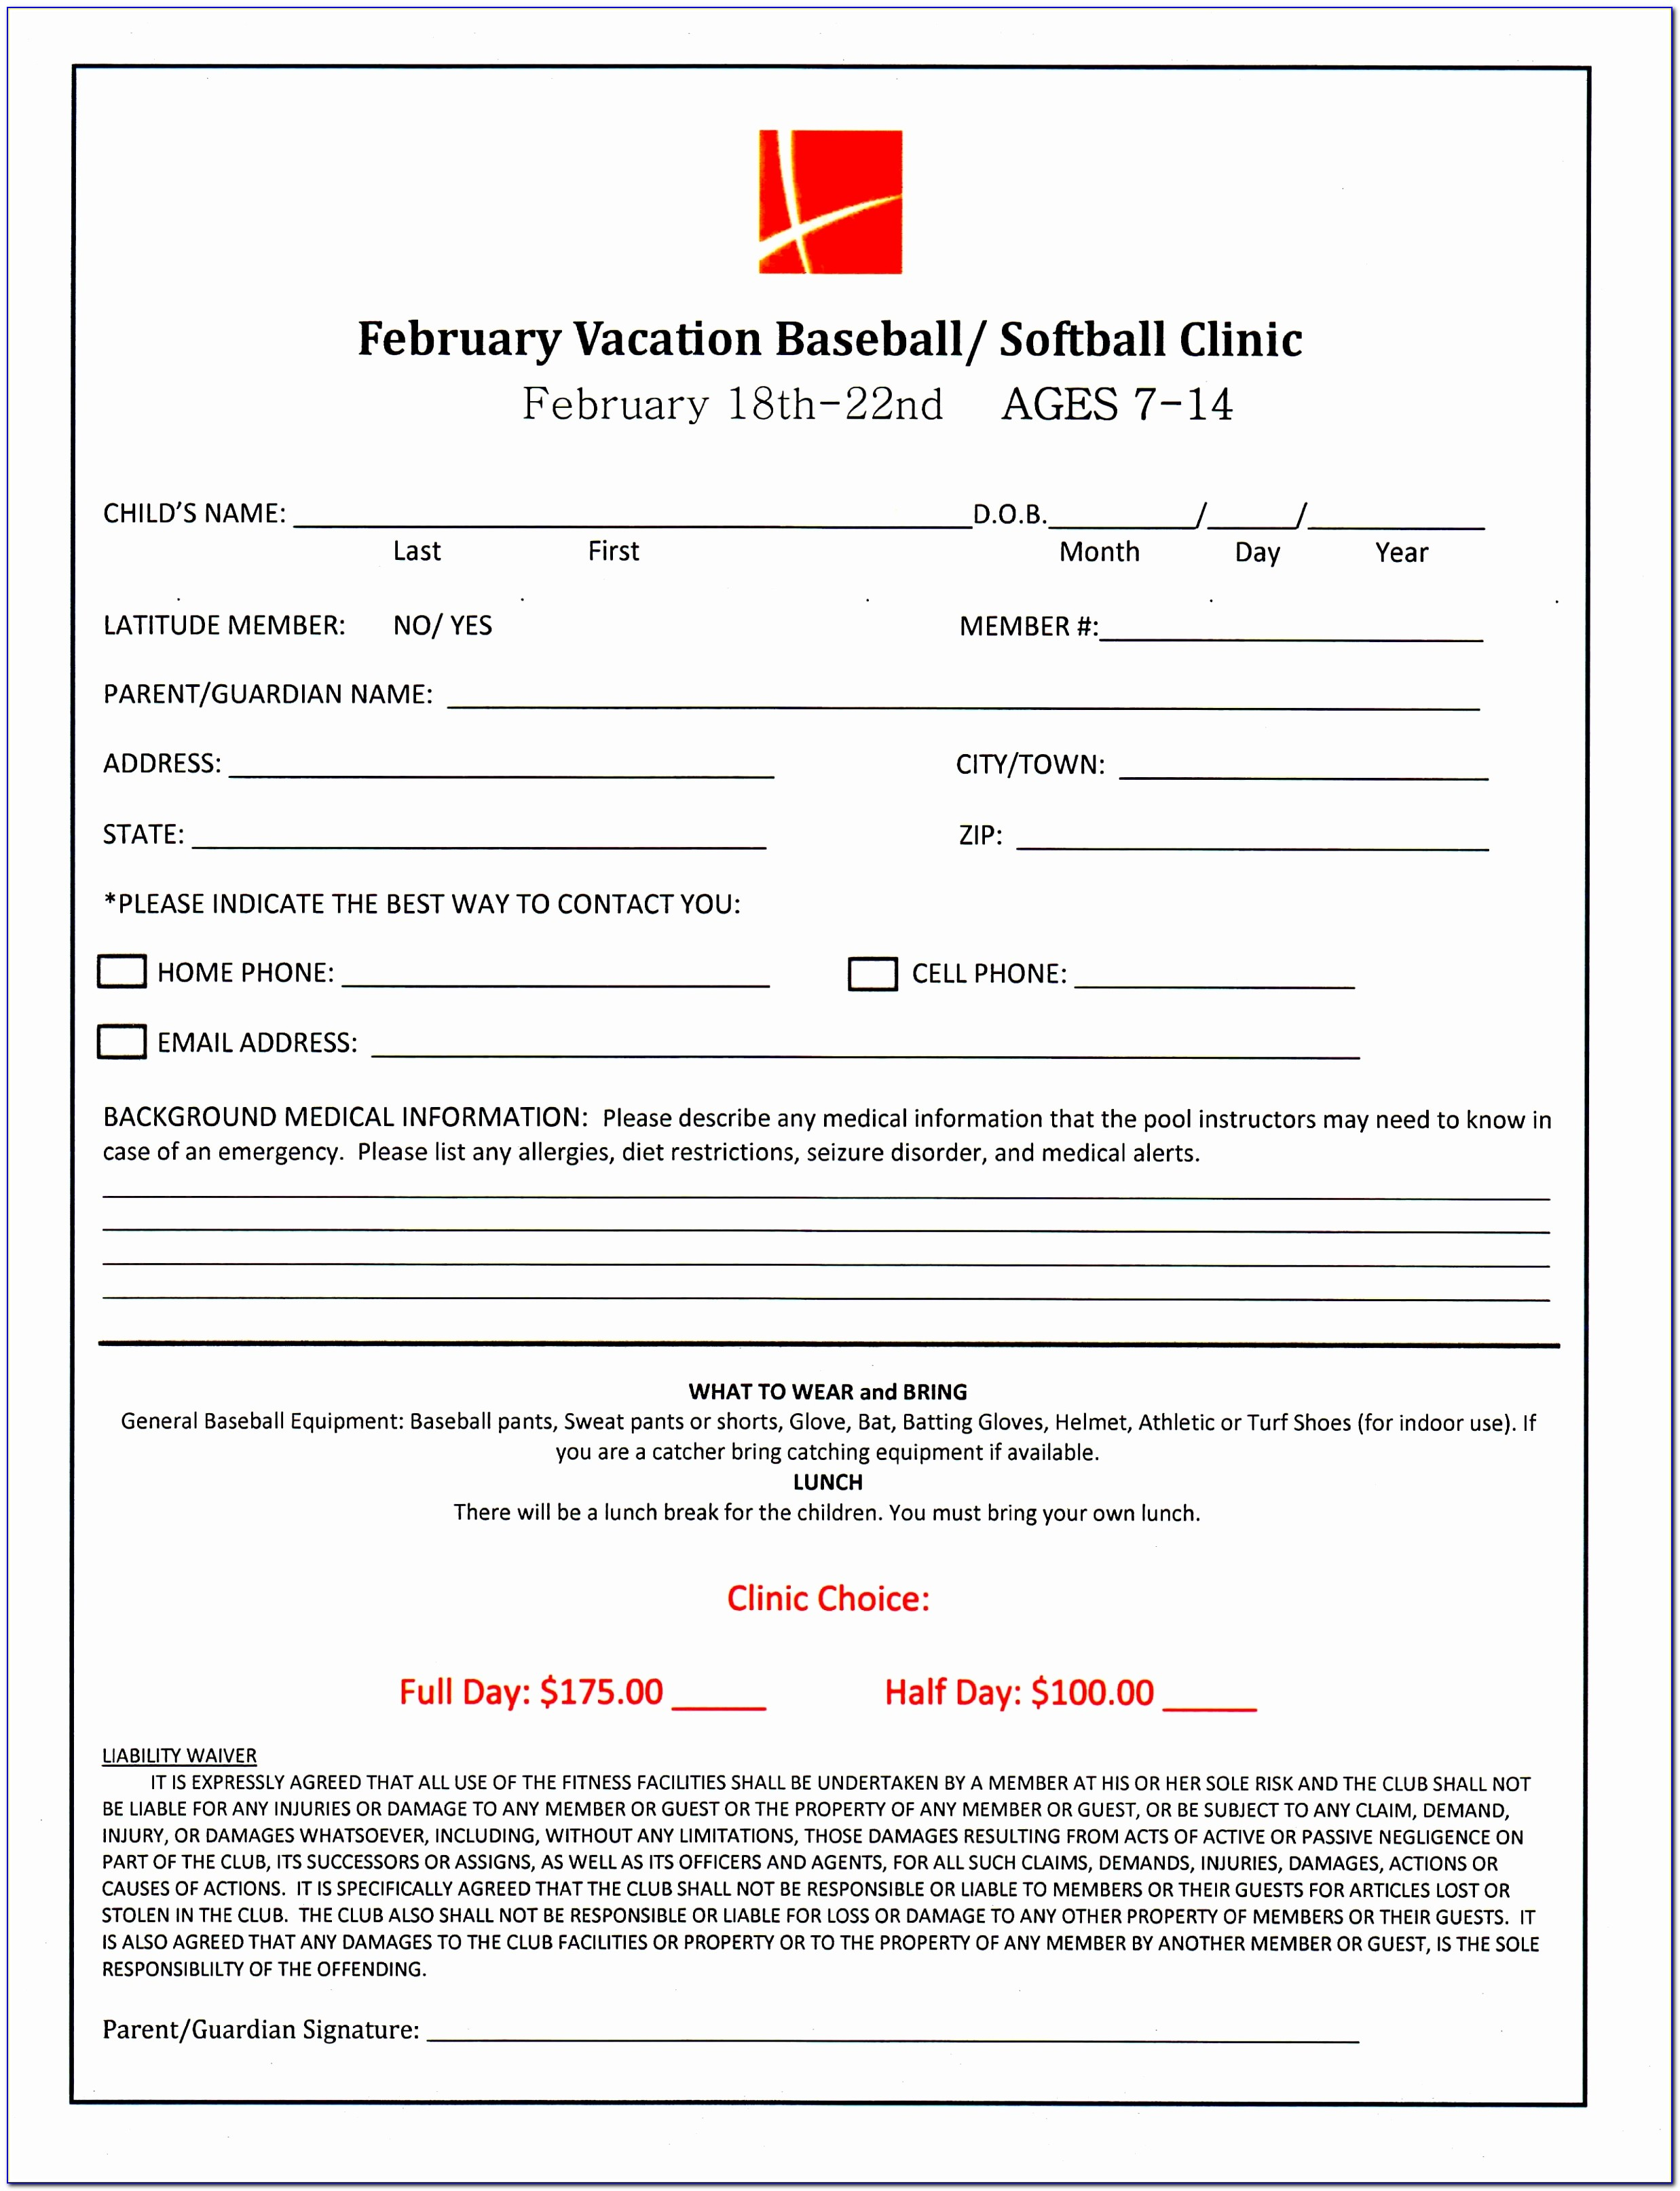 Team Sign Up Sheet Template Free Loan Agreement Example Baseball Registration Form Template Fresh Doc Xls Letter Download Templates Pwoco